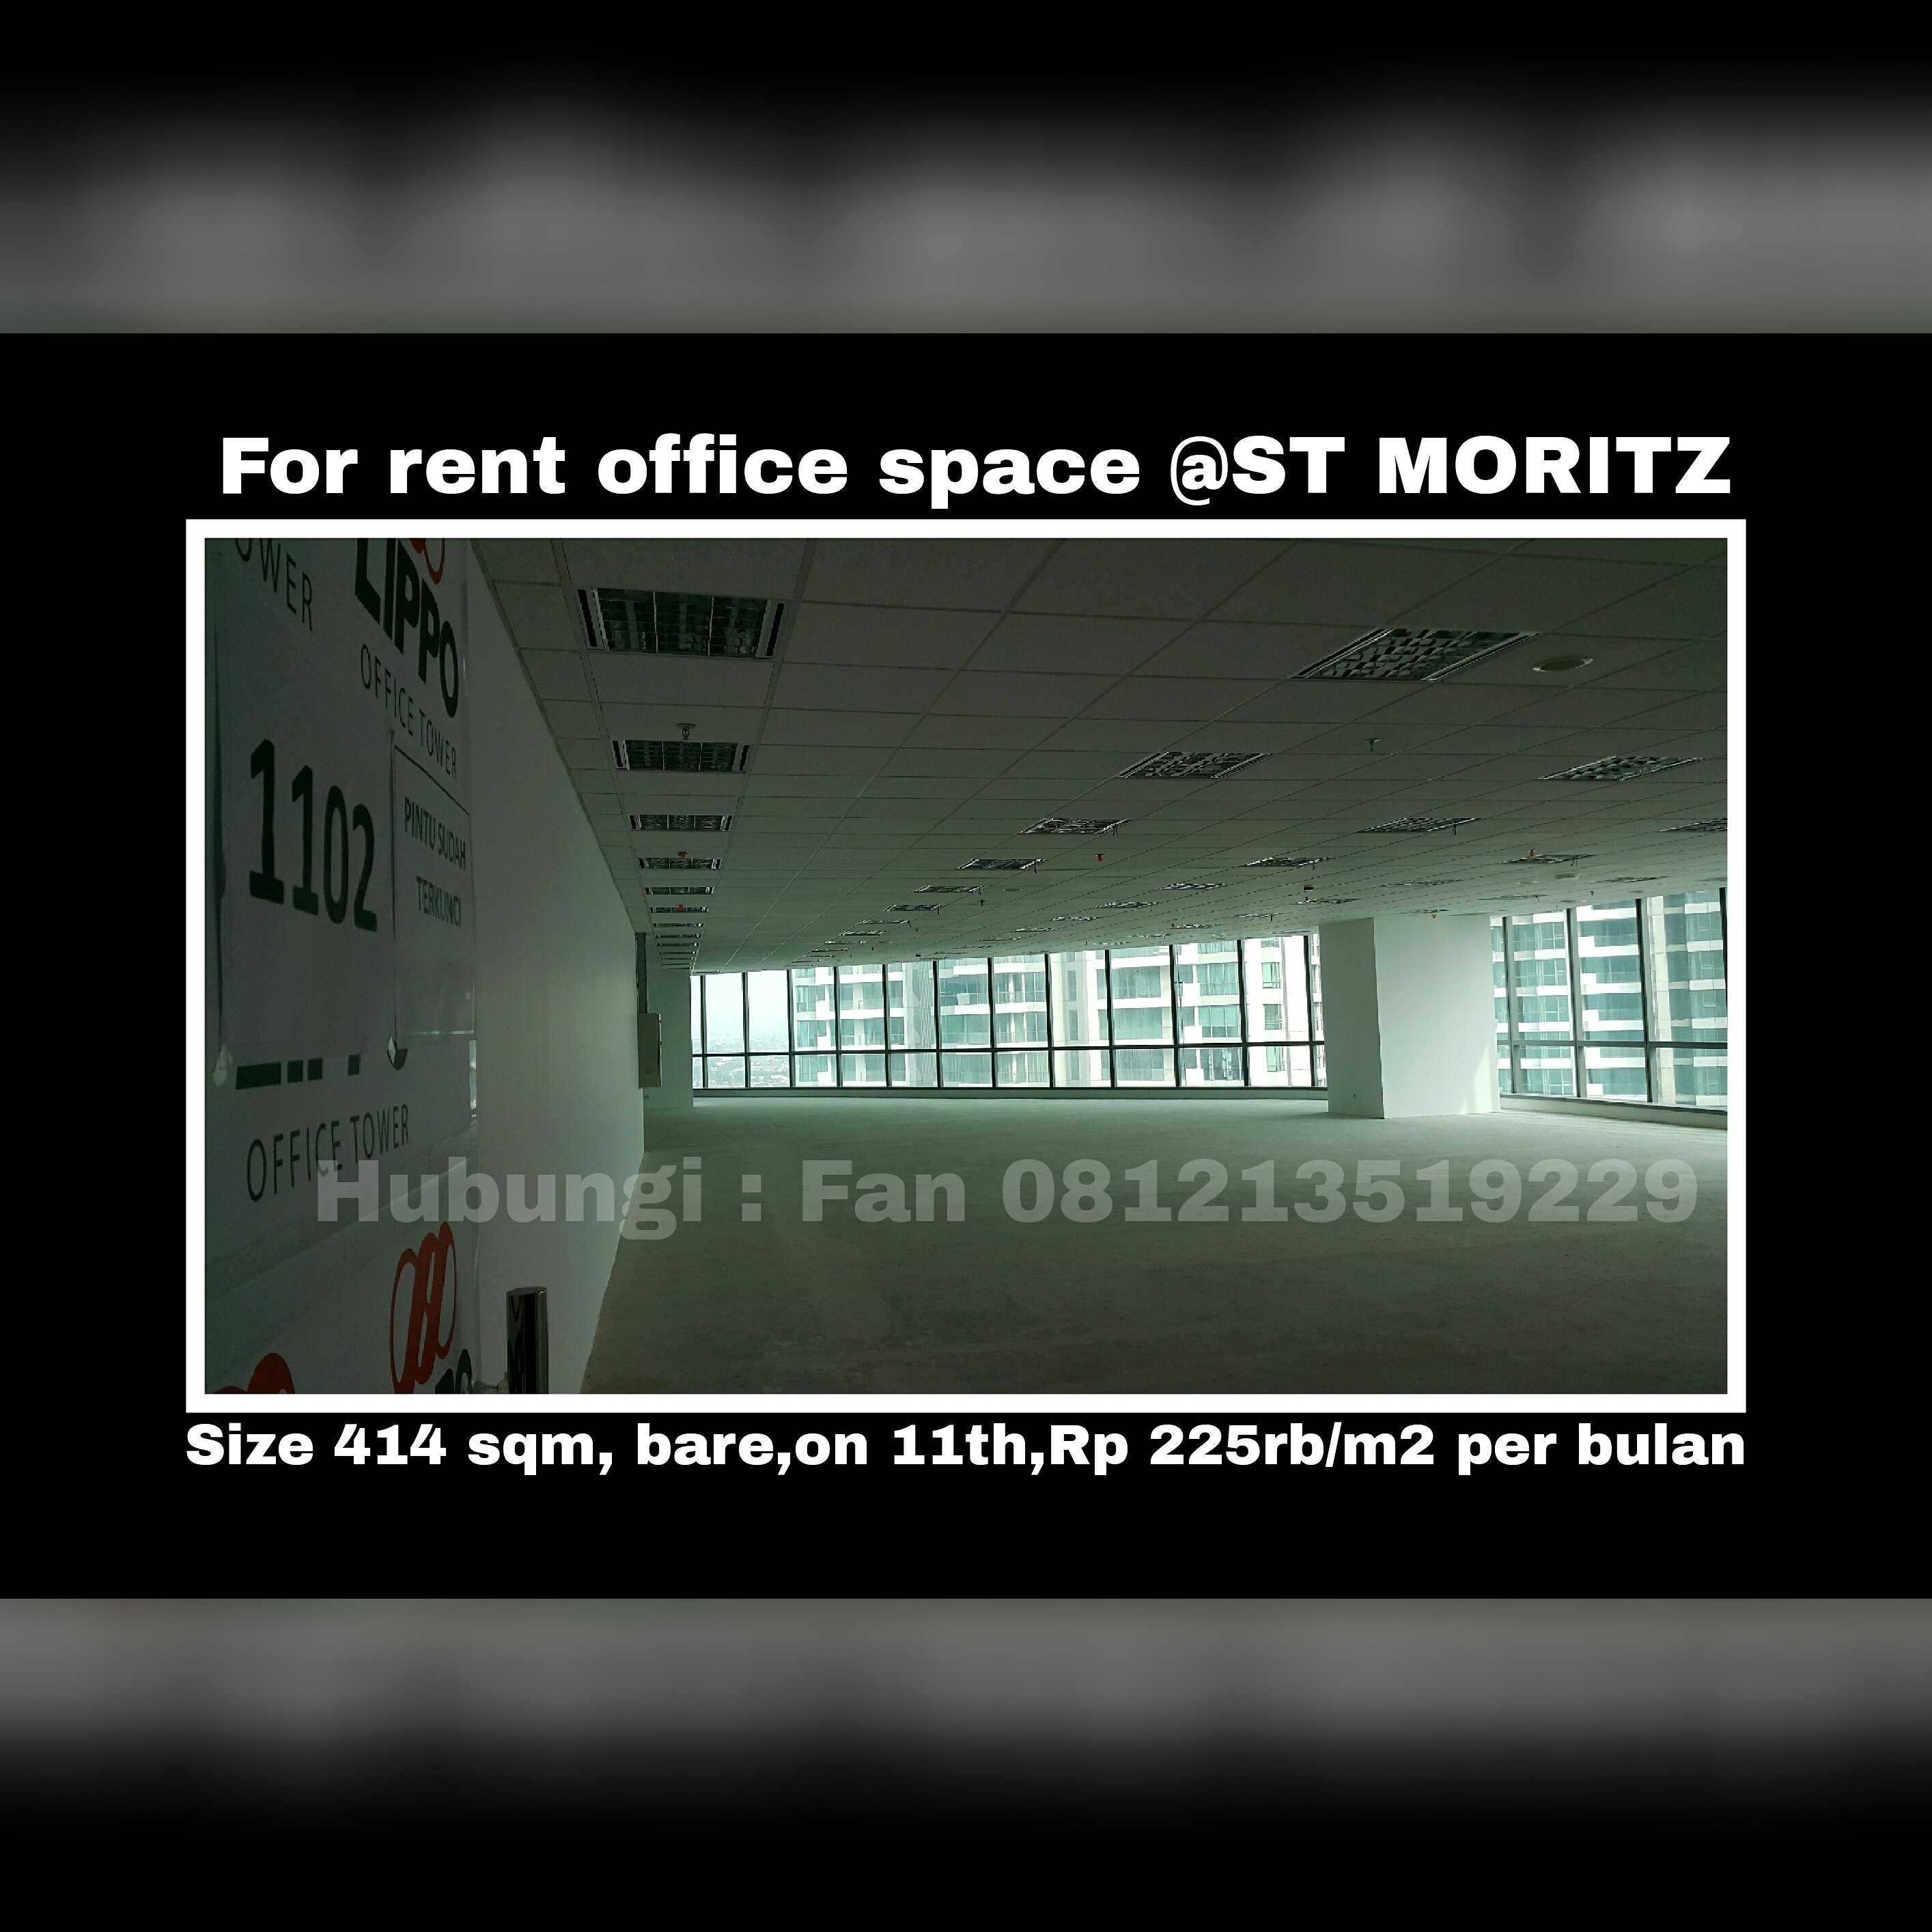 For Rental: Office Space @ST MORITZ For Rent